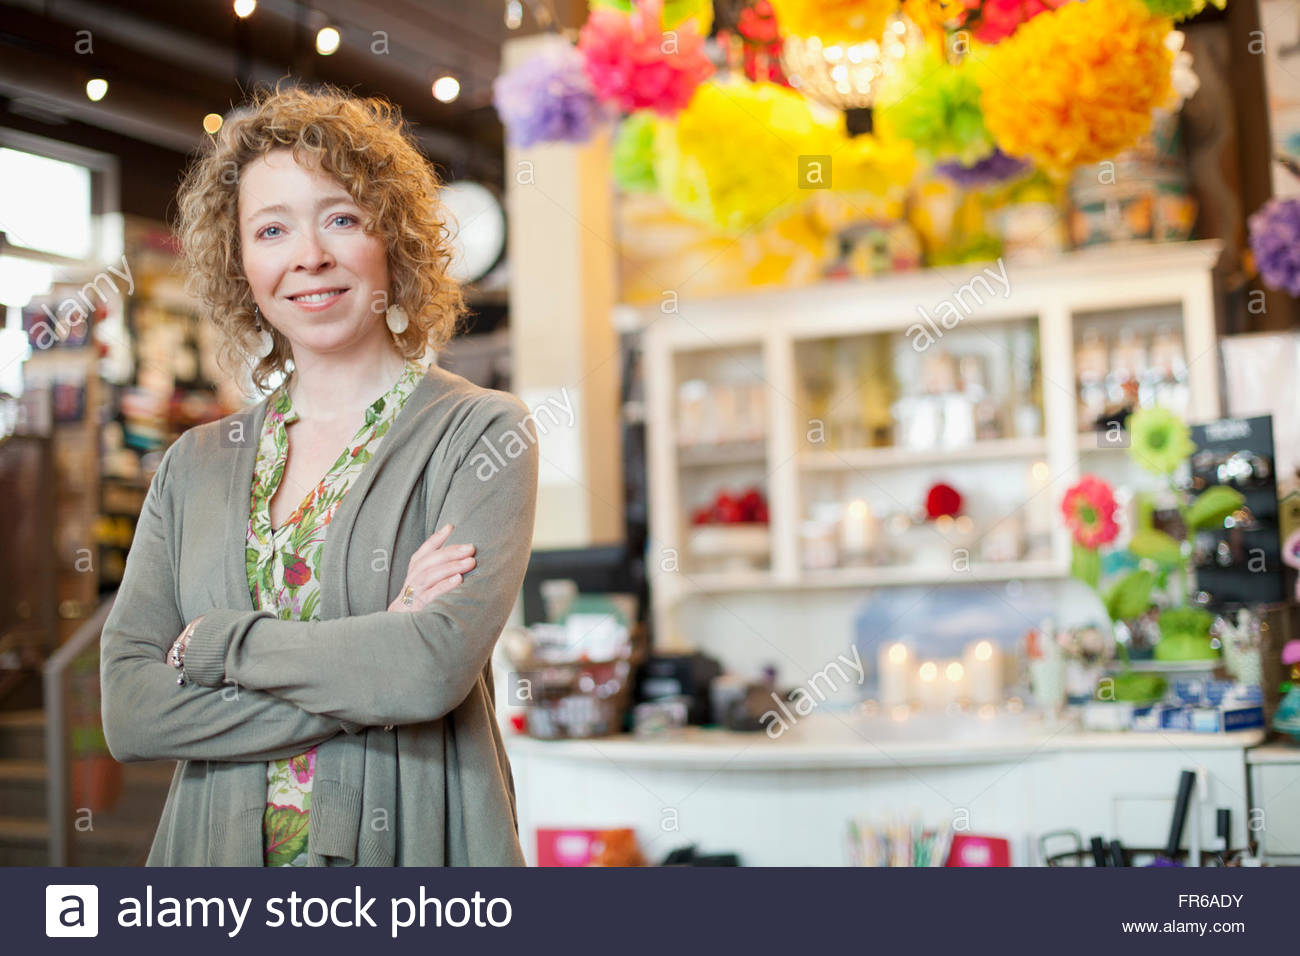 owner of stationery store Stock Photo